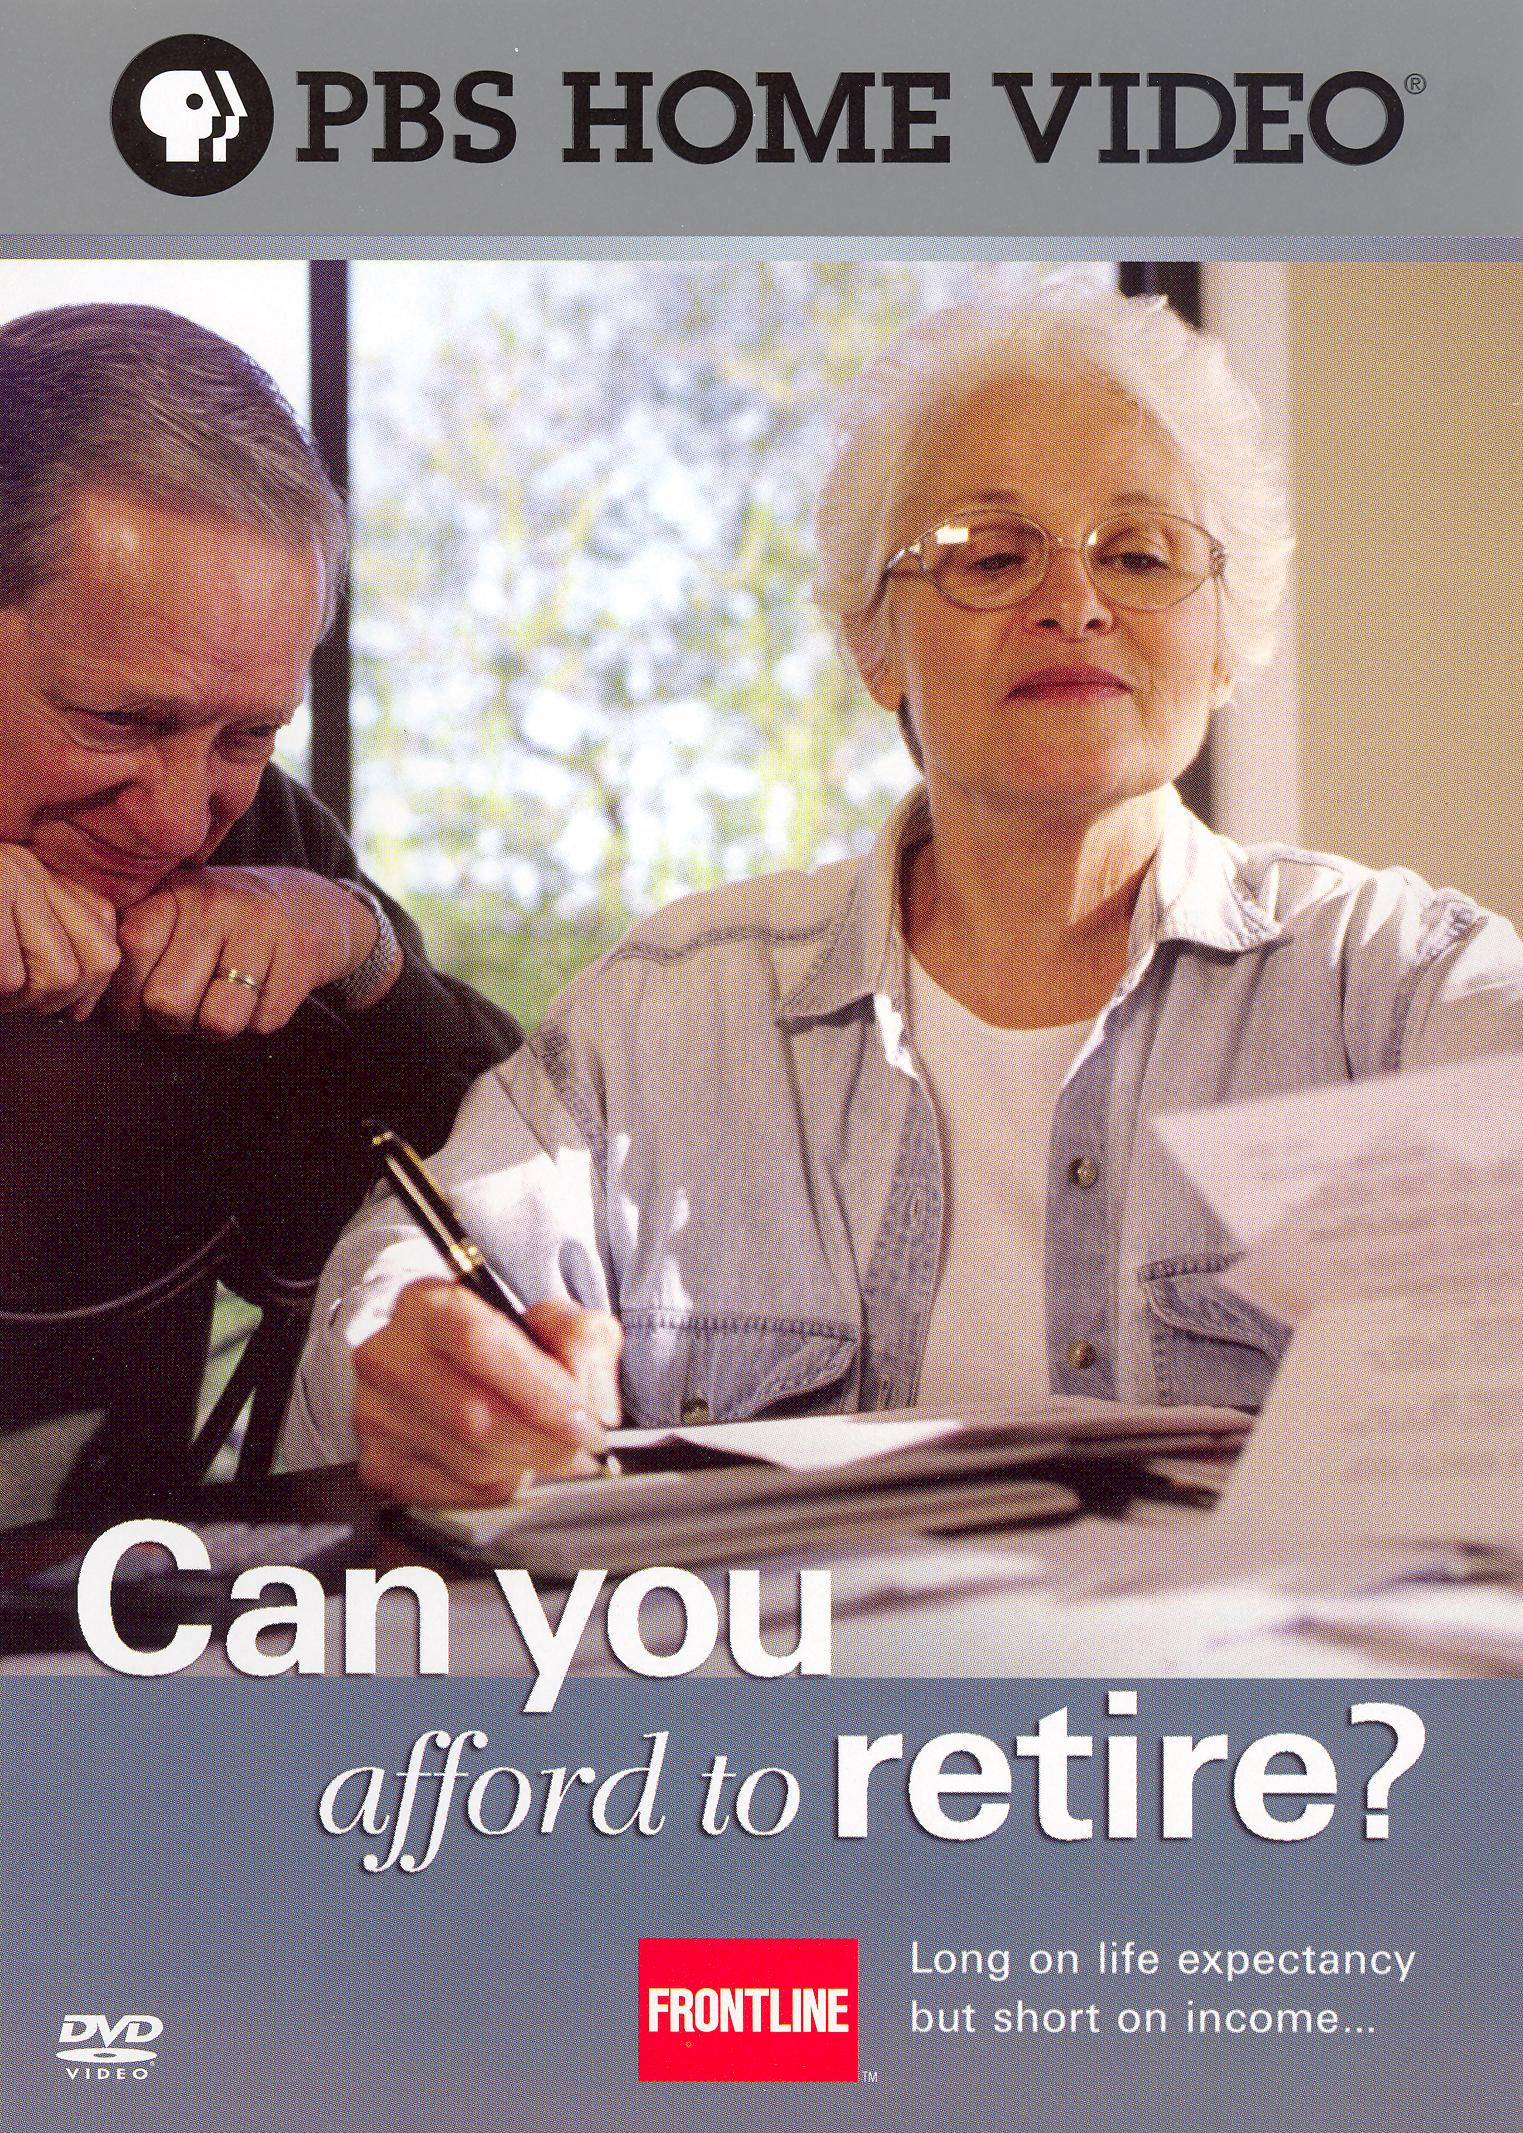 Frontline: Can You Afford to Retire?